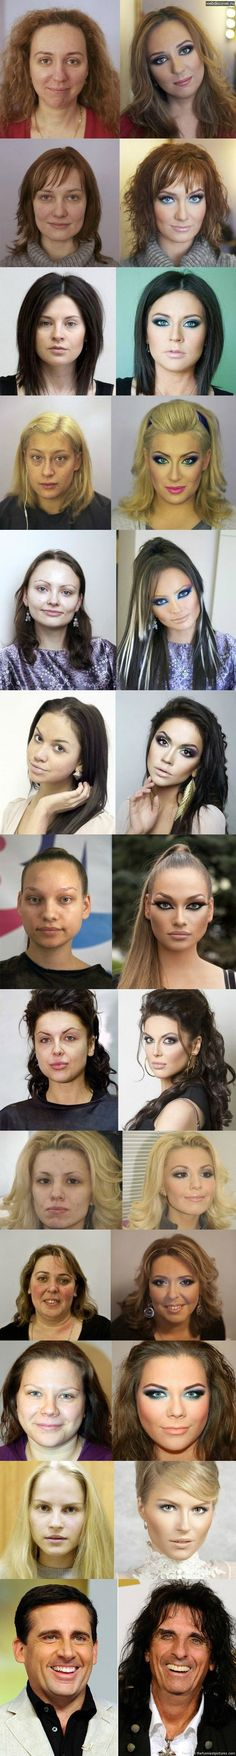 The power of makeup? More like the power of drag queen makeup